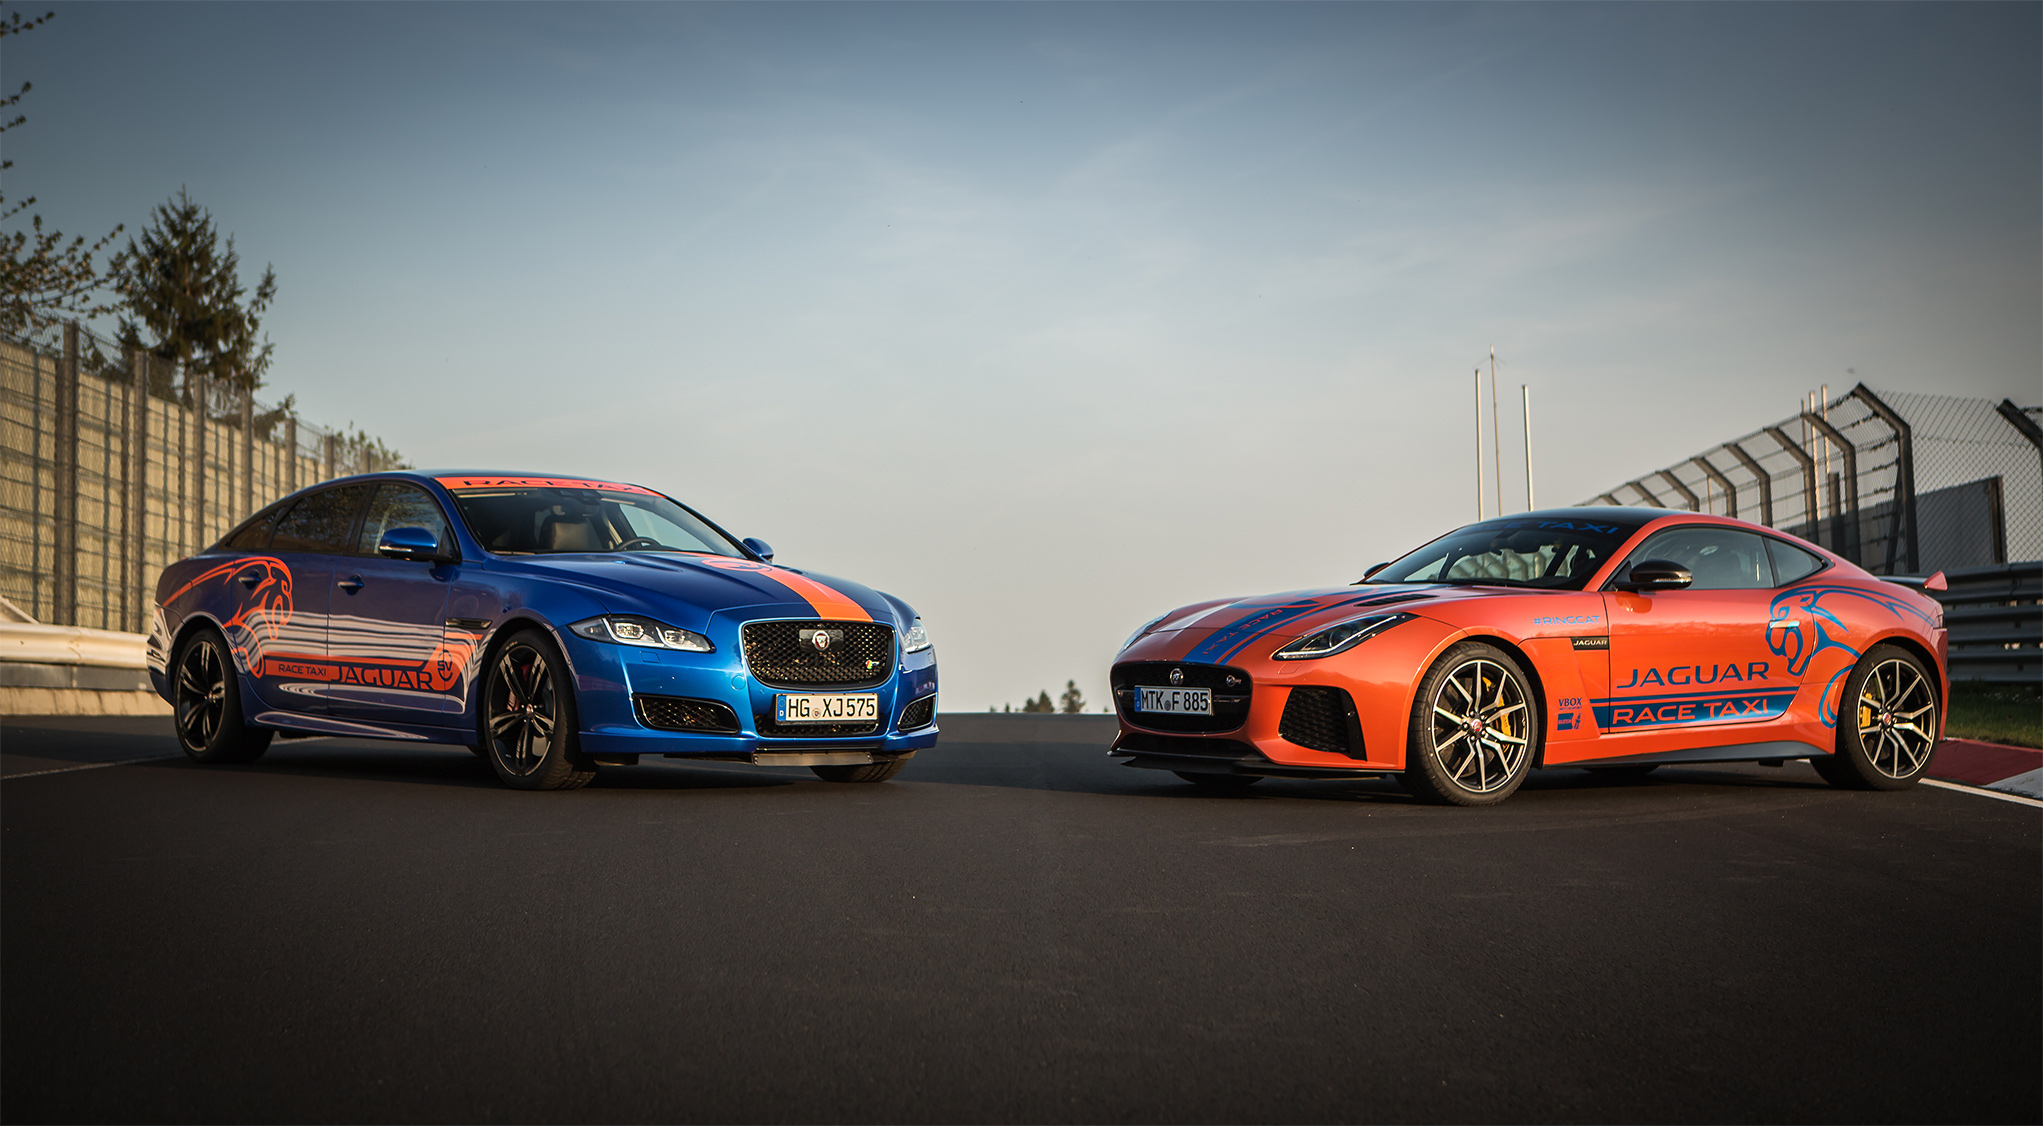 TrackWorthy - Jaguar F-TYPE SVR and XJR575 Nurburgring Race Taxis (1)